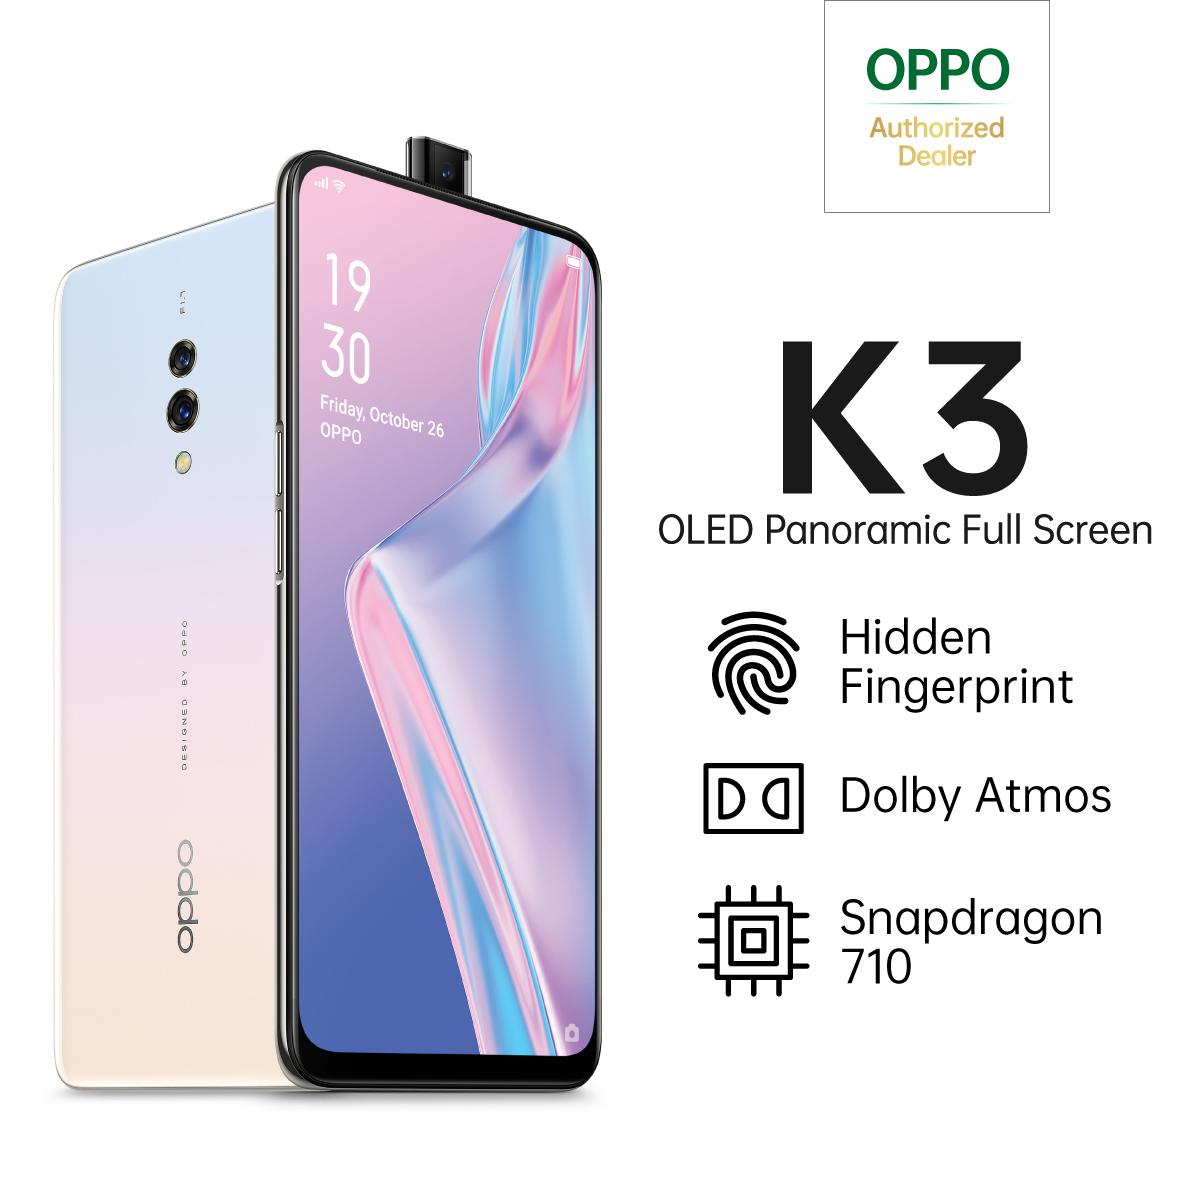 OPPO K3 Special Online Edition 6/64GB OLED Panoramic Screen, Cashback hingga 400K